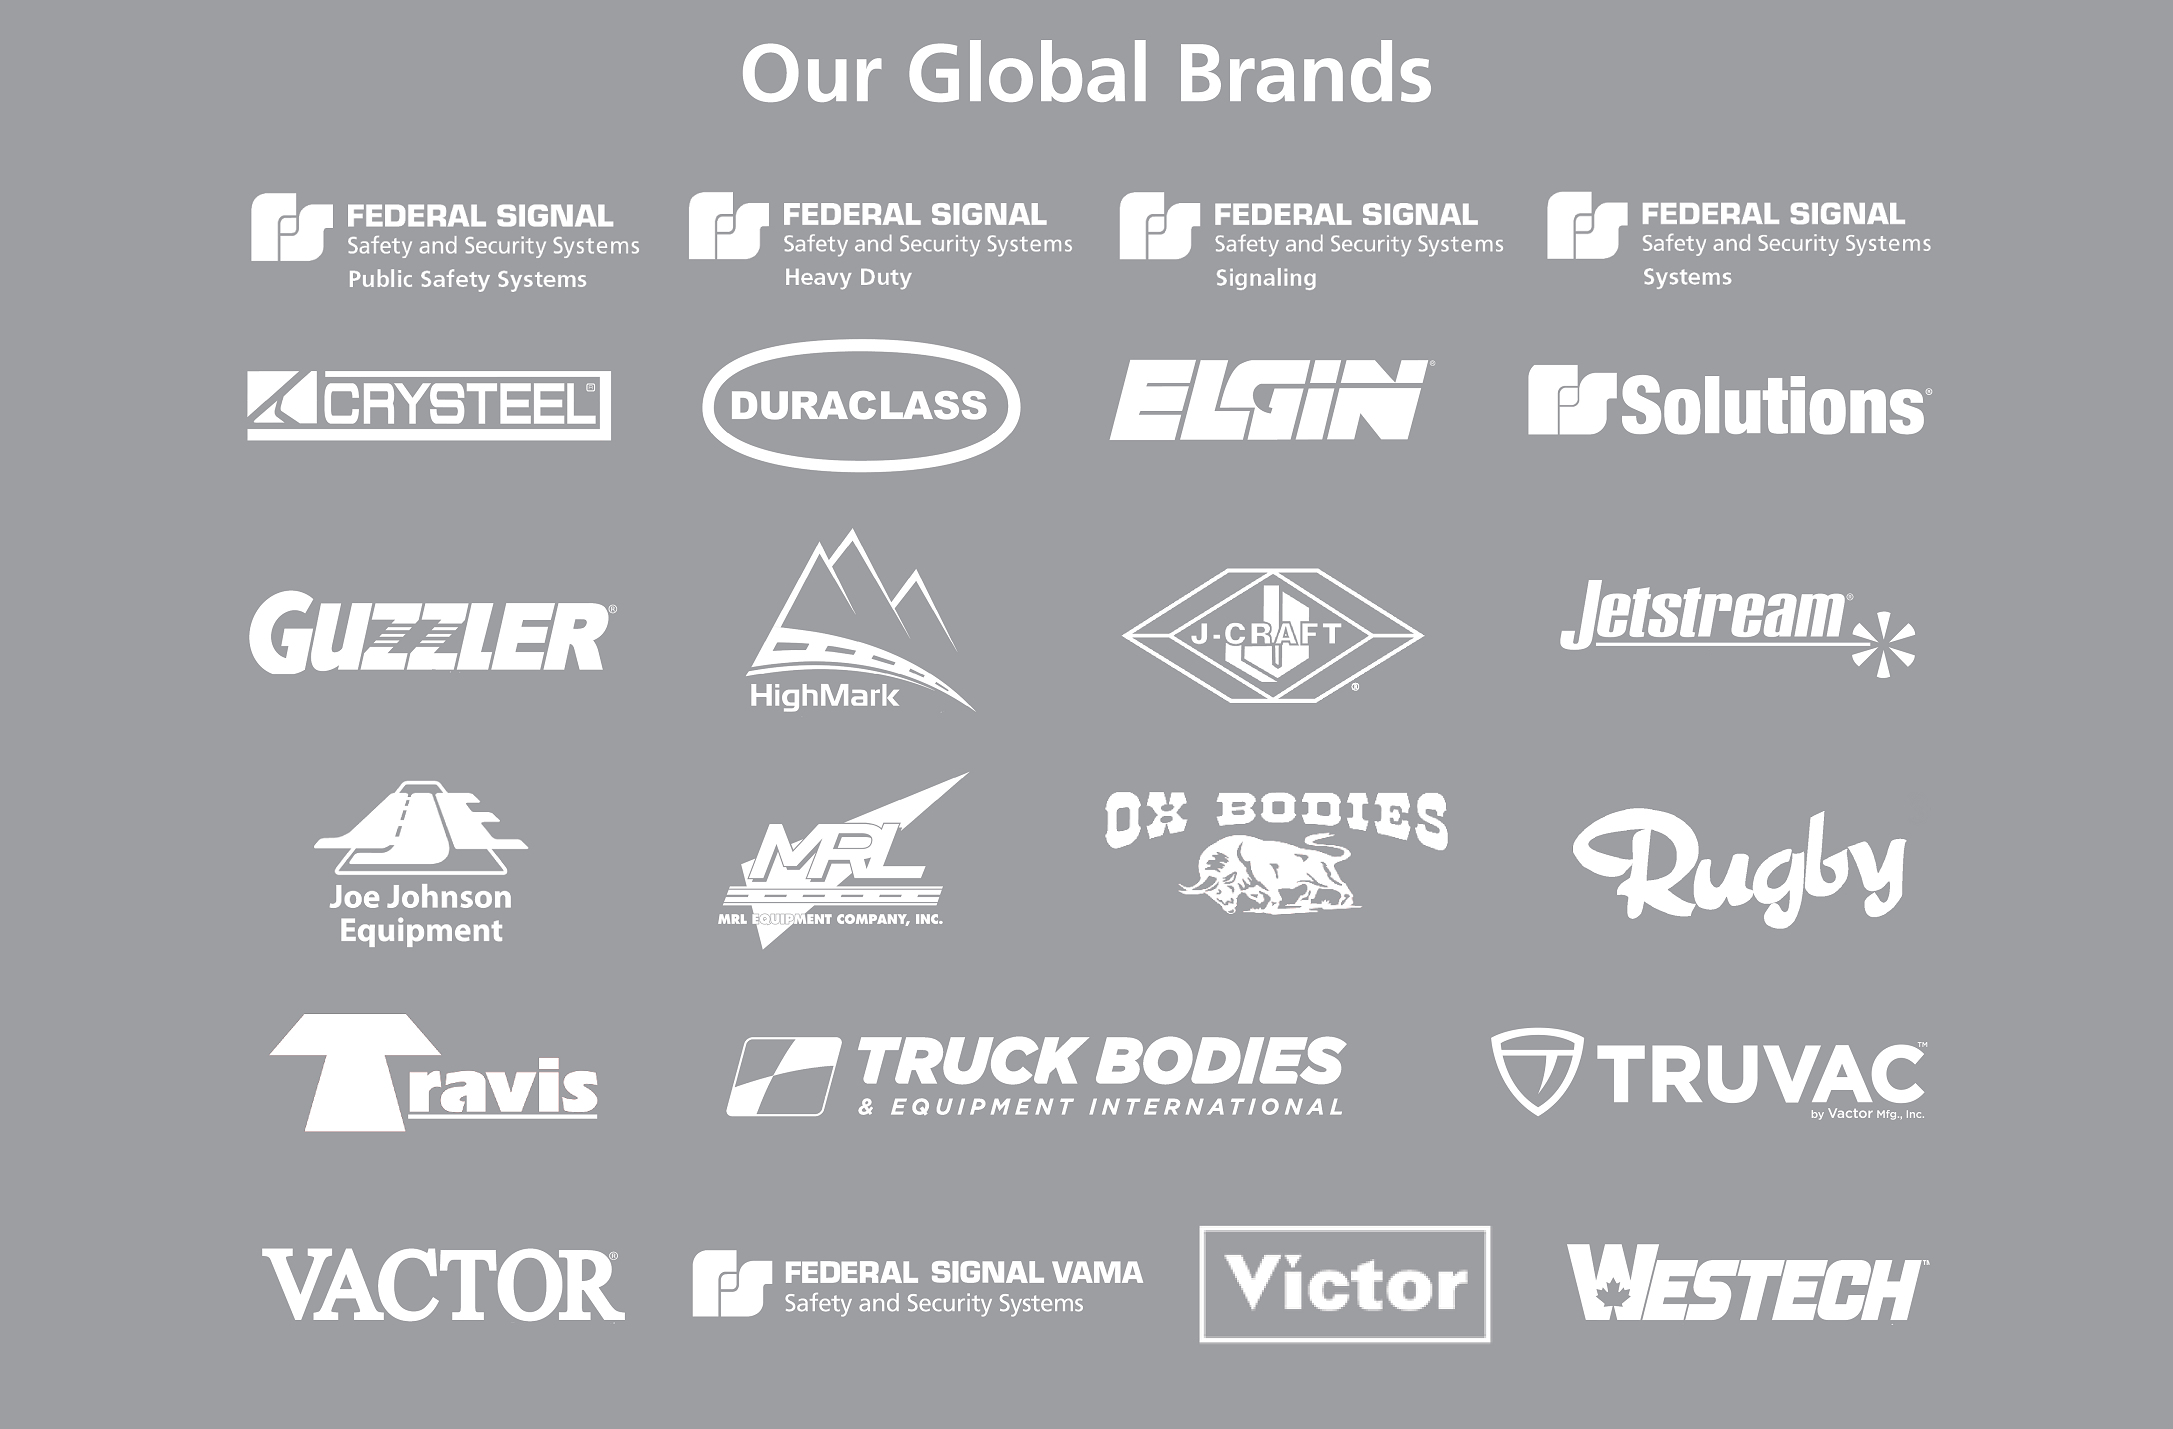 Our Global Brands 2019